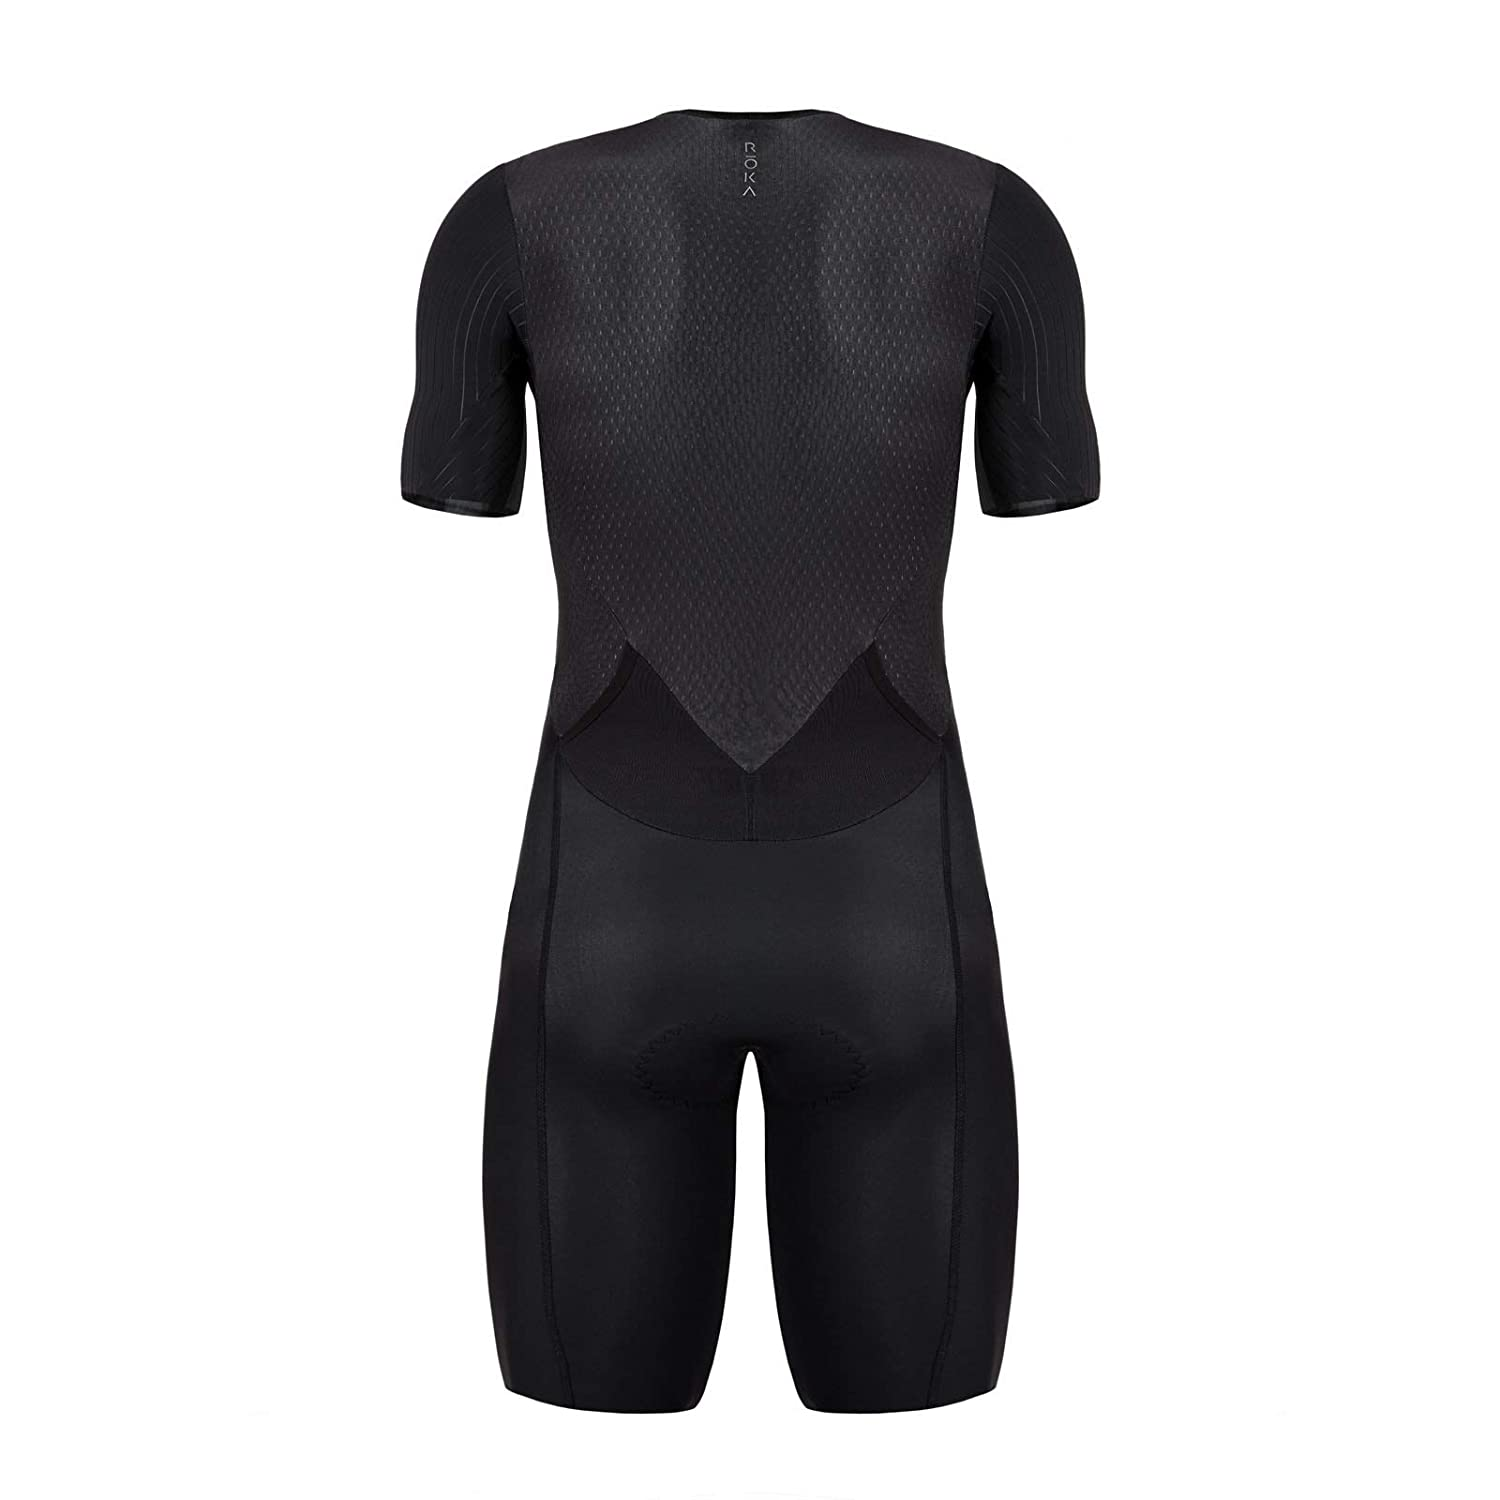 ROKA Mens Gen II Elite Aero Short Sleeve Triathlon Sport Suit